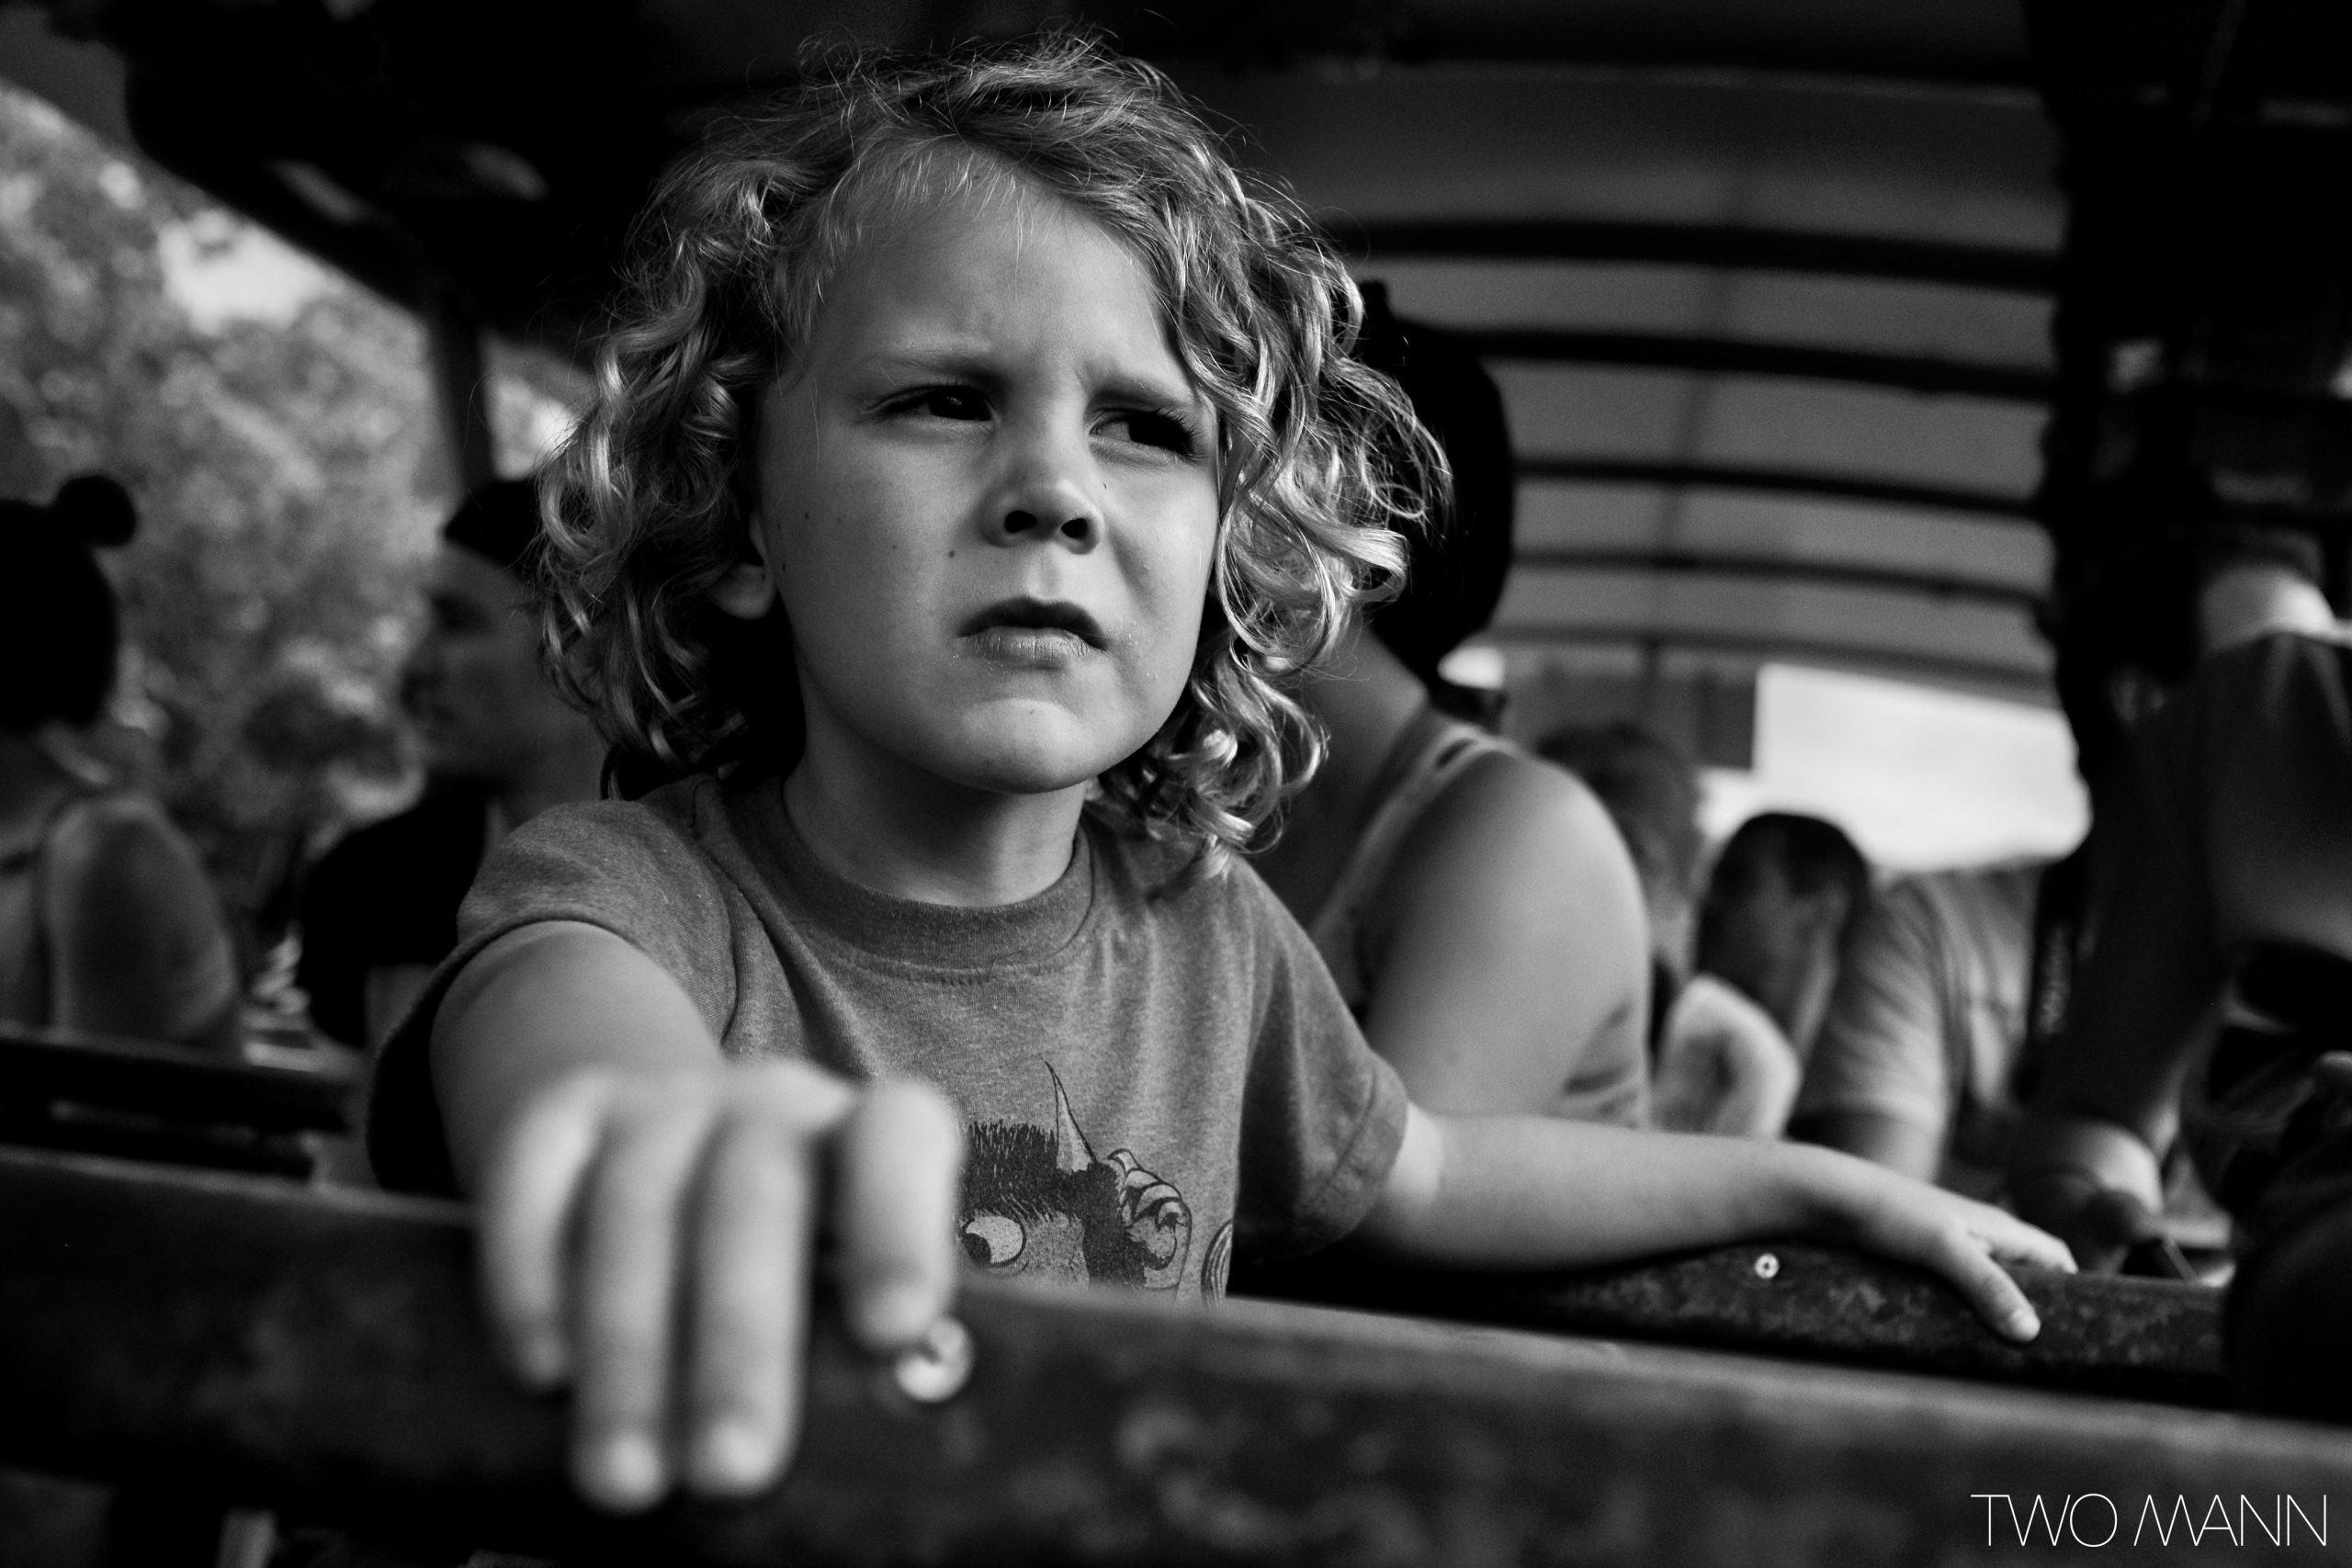 Young boy on bus looking displeased